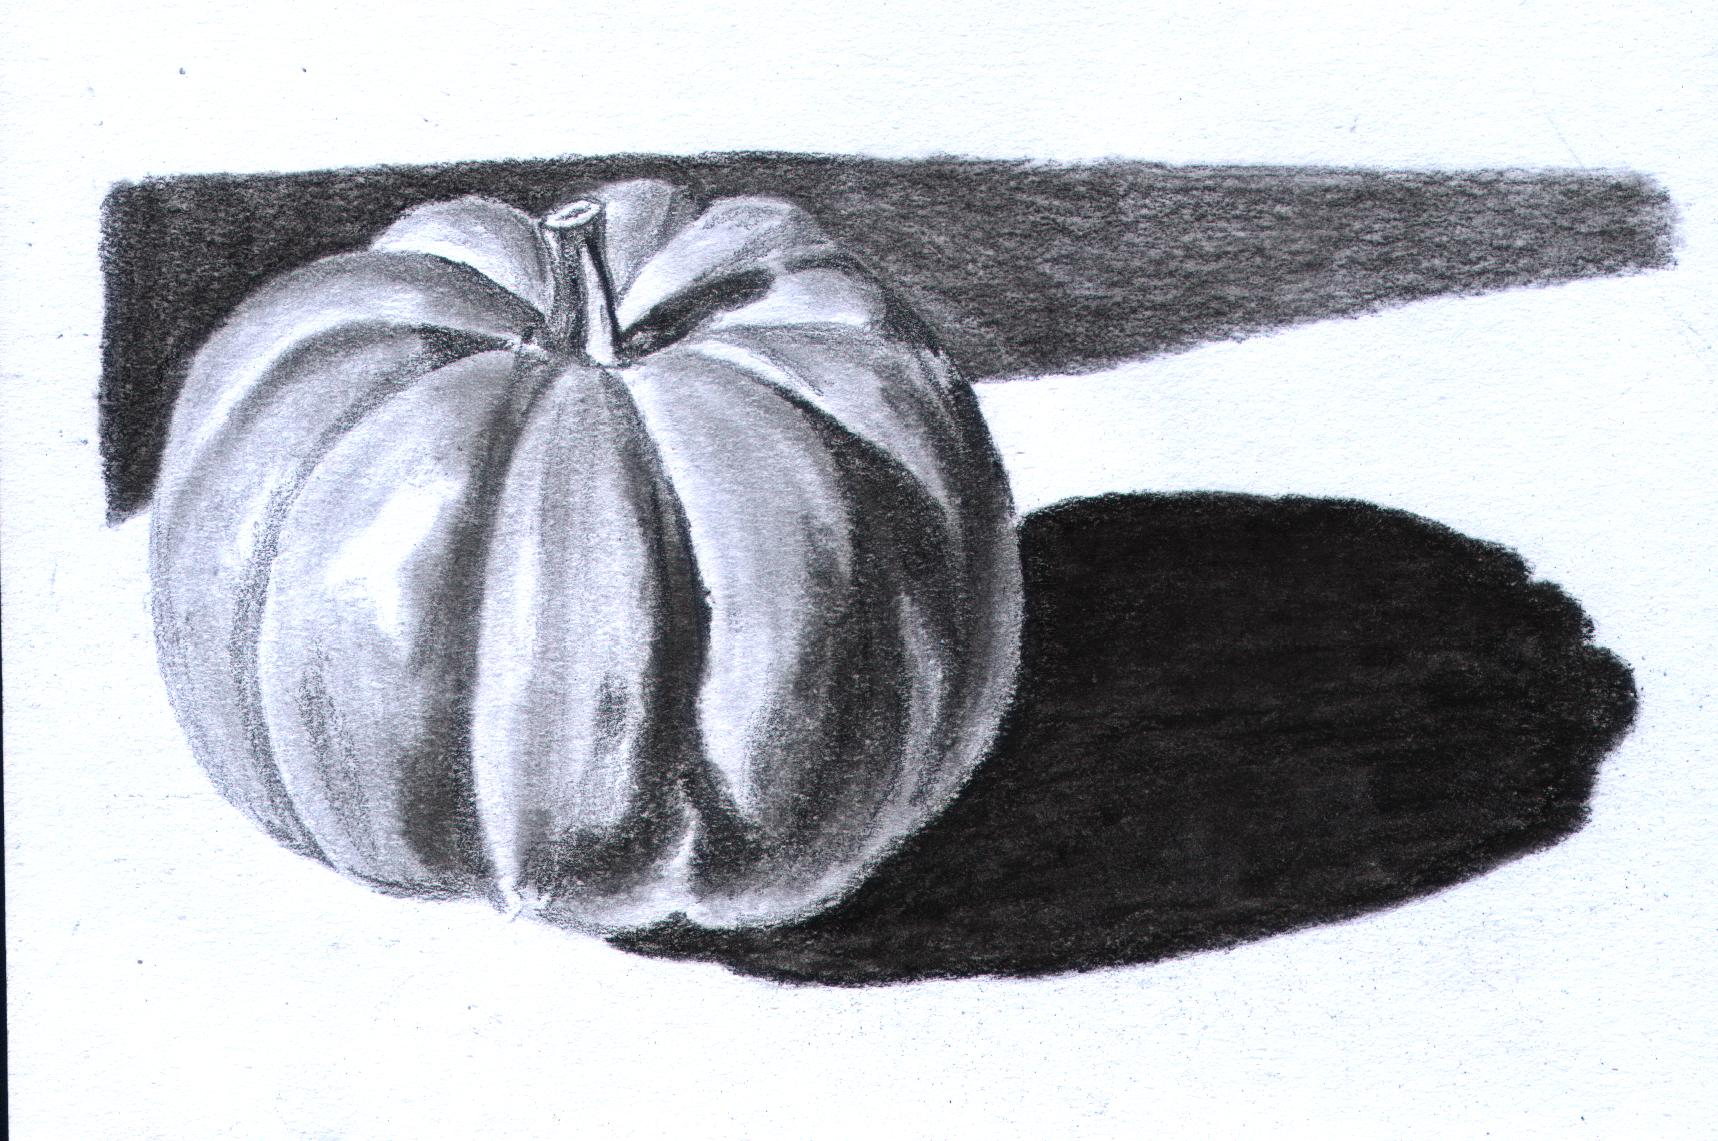 Drawn pumpkin charcoal Pumpkin Pencil Art and of